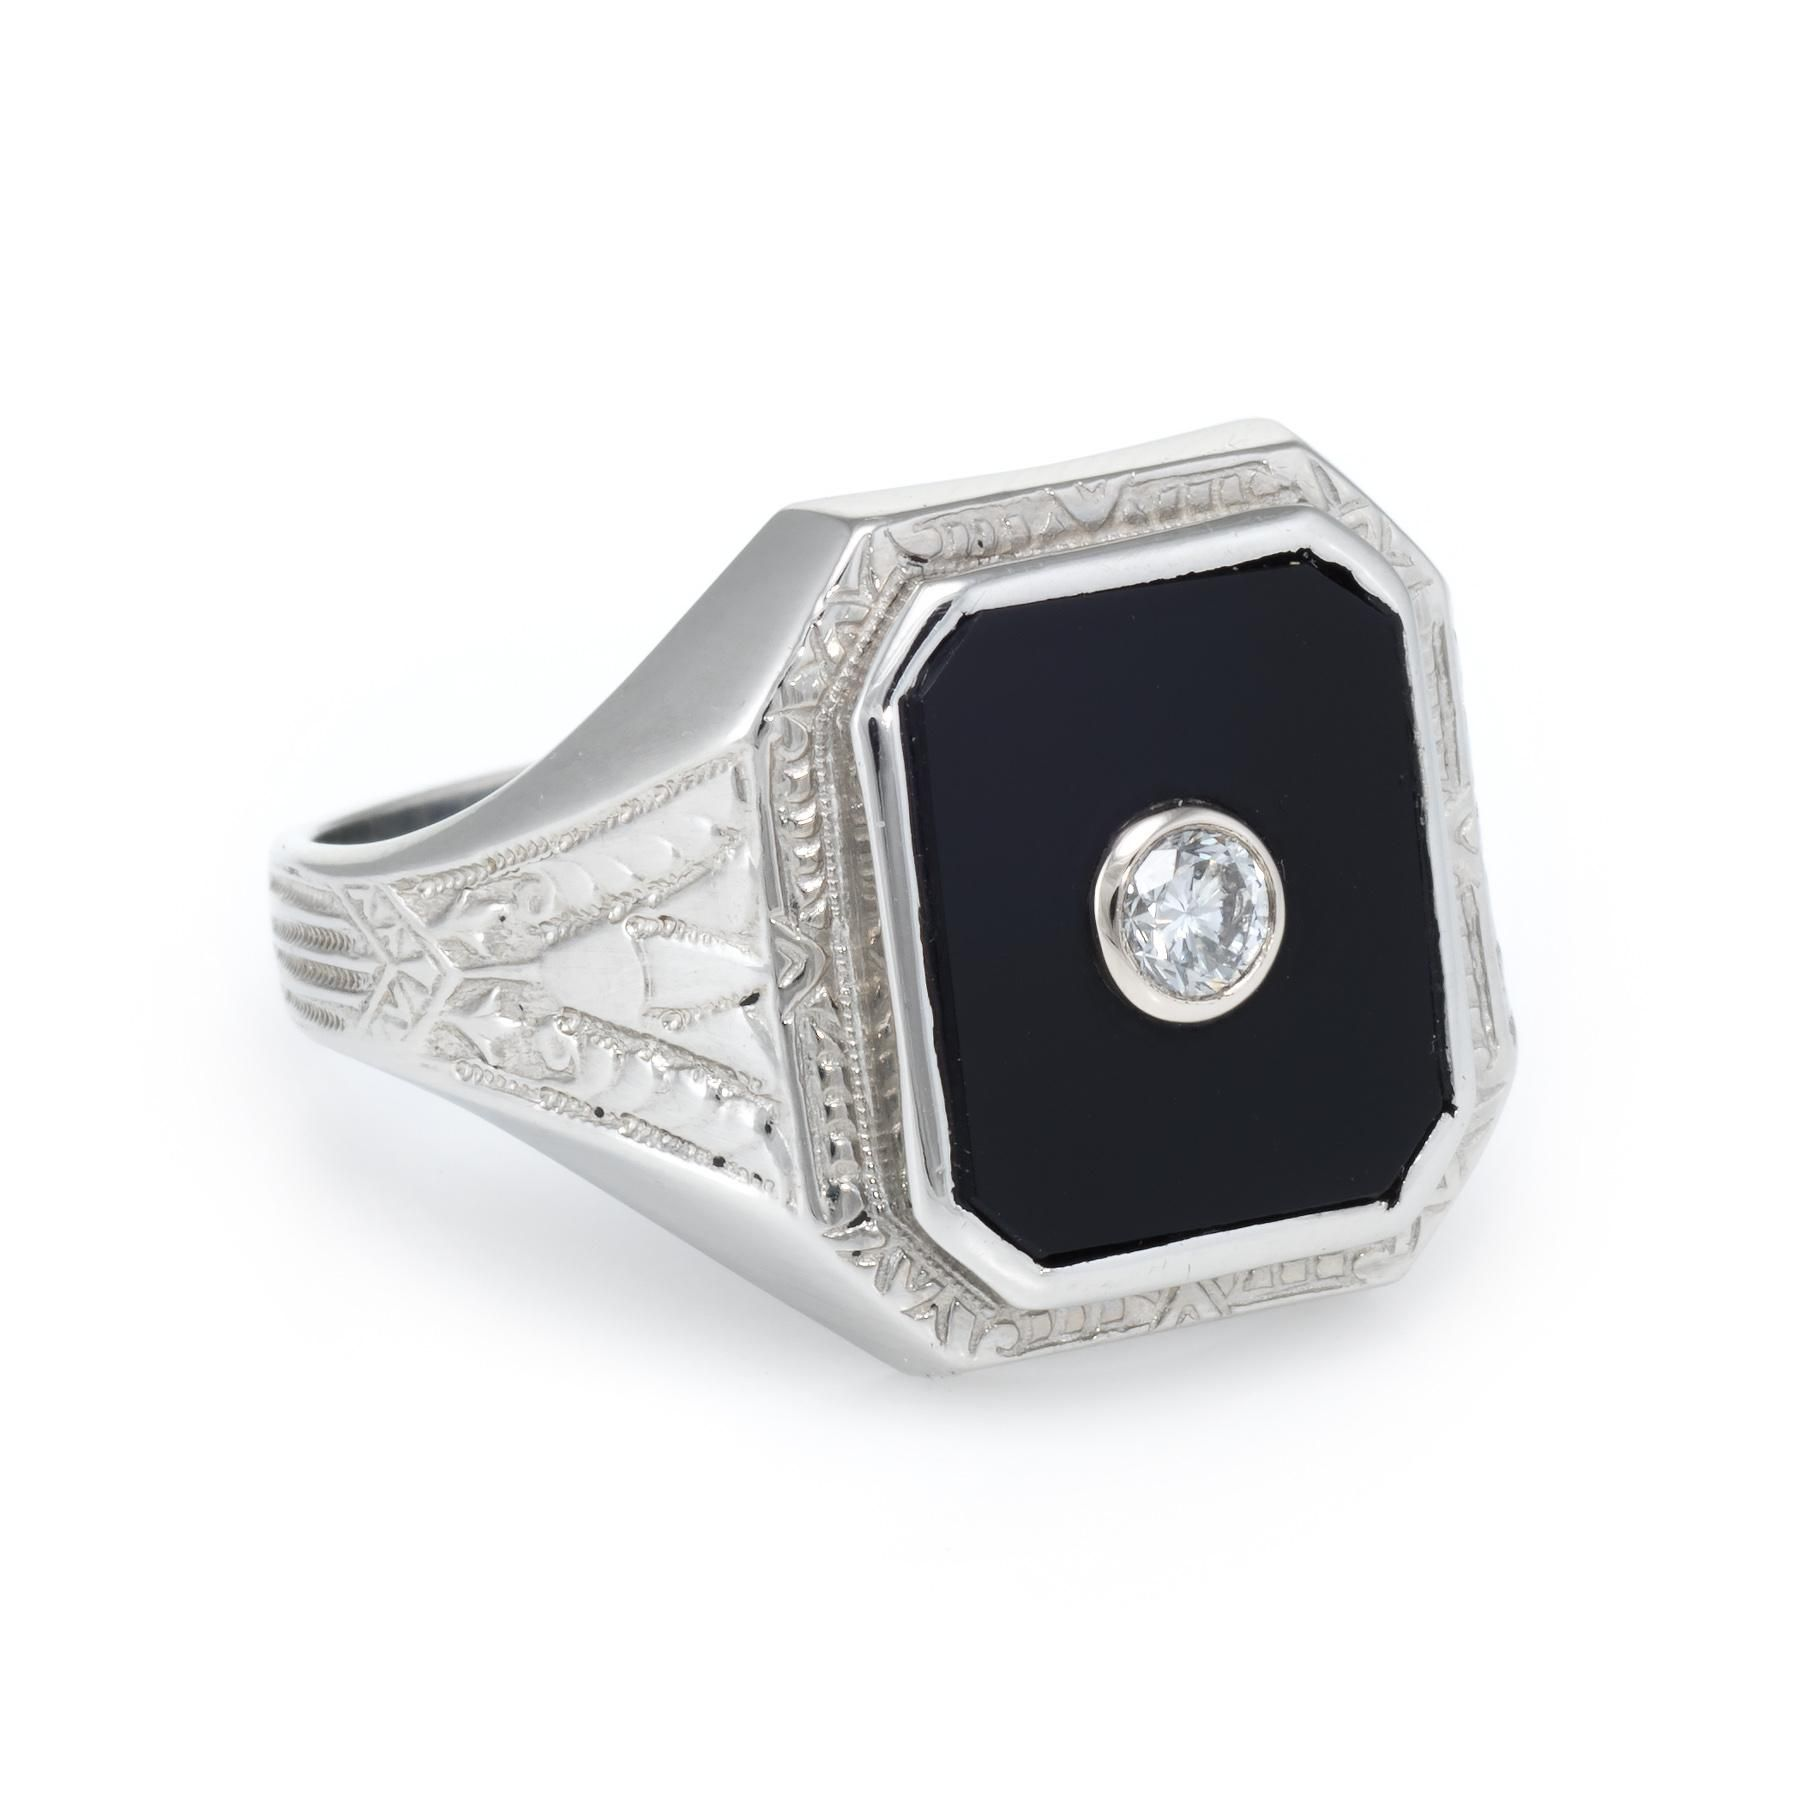 Vintage Art Deco Ostby Barton Mens Diamond Onyx Ring 10 Karat White Gold Estate Artdeco Mens Mensjewel Vintage Art Deco Vintage Art Deco Rings Art Deco Ring